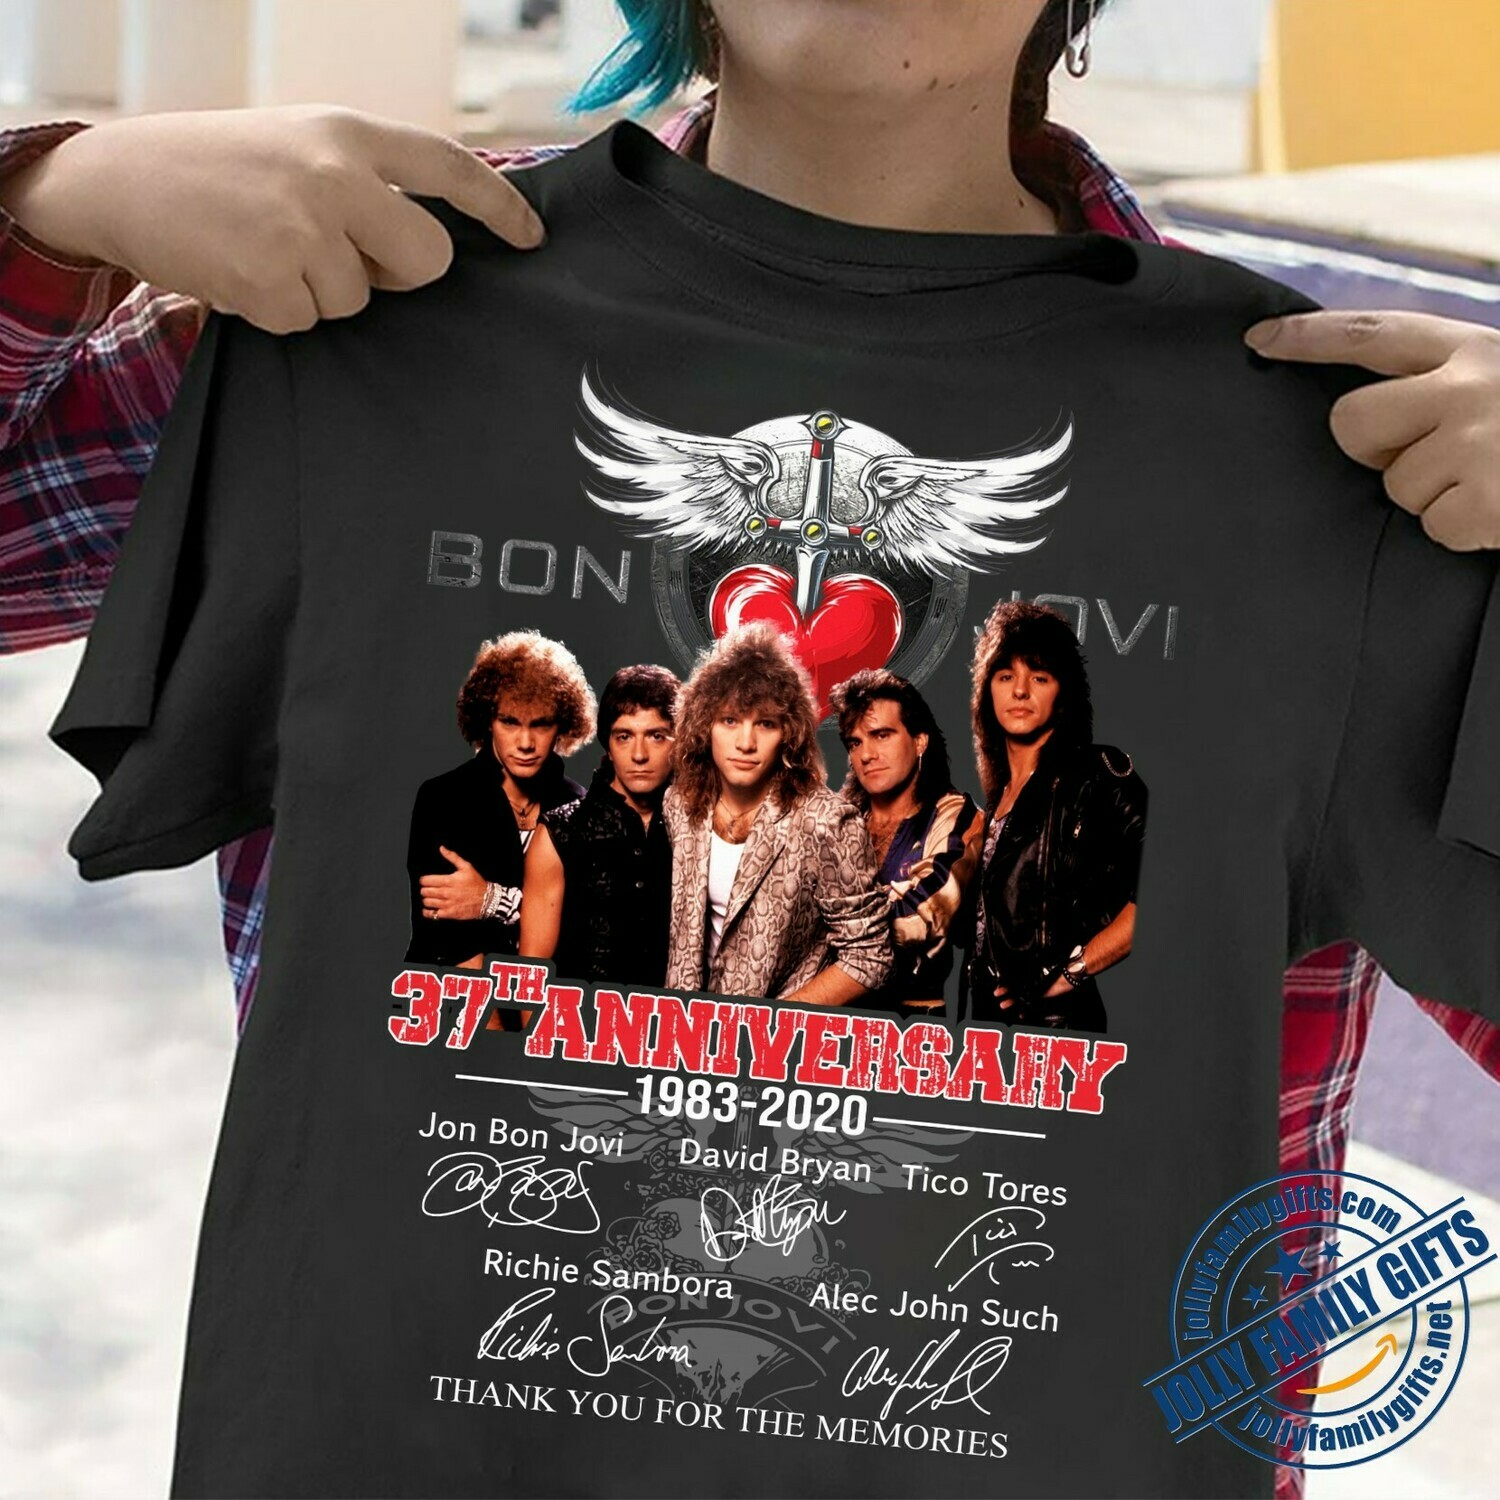 Bon Jovi 37th Anniversary 1983 2020 Thank You For The Memories signatures for Men Women Unisex T-Shirt Hoodie Sweatshirt Sweater Plus Size for Ladies Women Men Kids Youth Gifts Tee Jolly Family Gifts